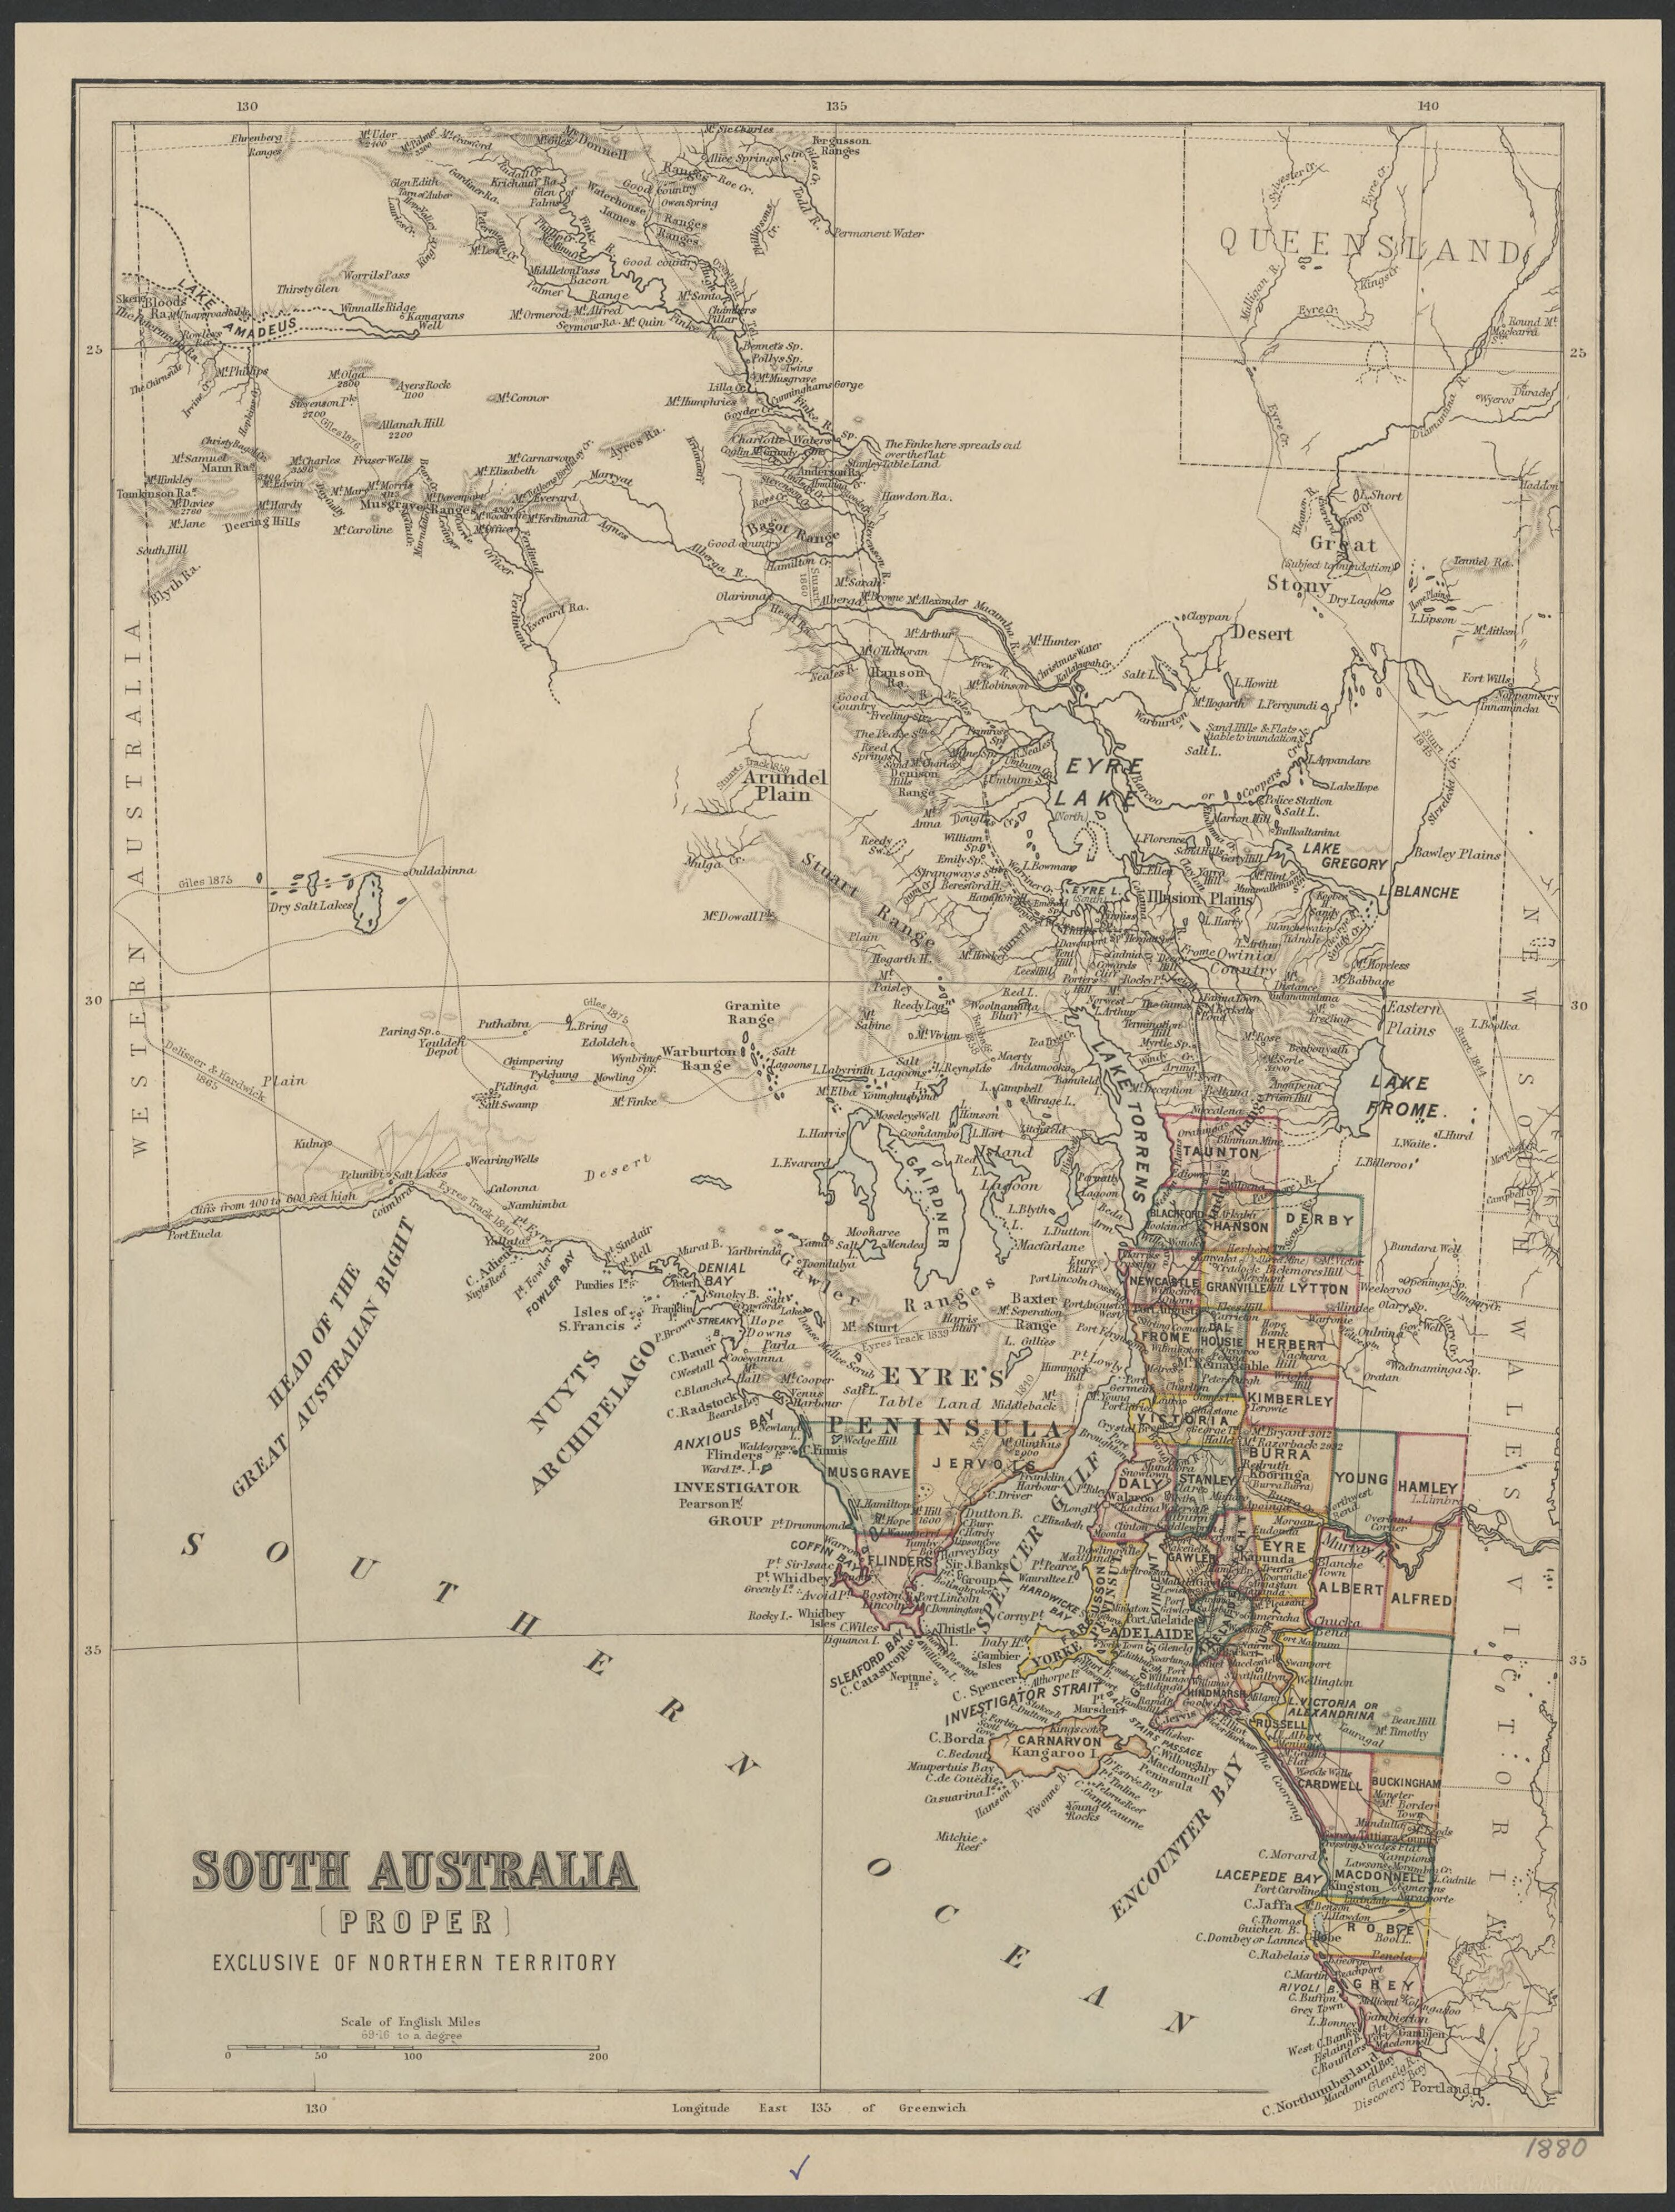 Map Of South Australia And Northern Territory.1880 Map Of South Australia Proper Exclusive Of Northern